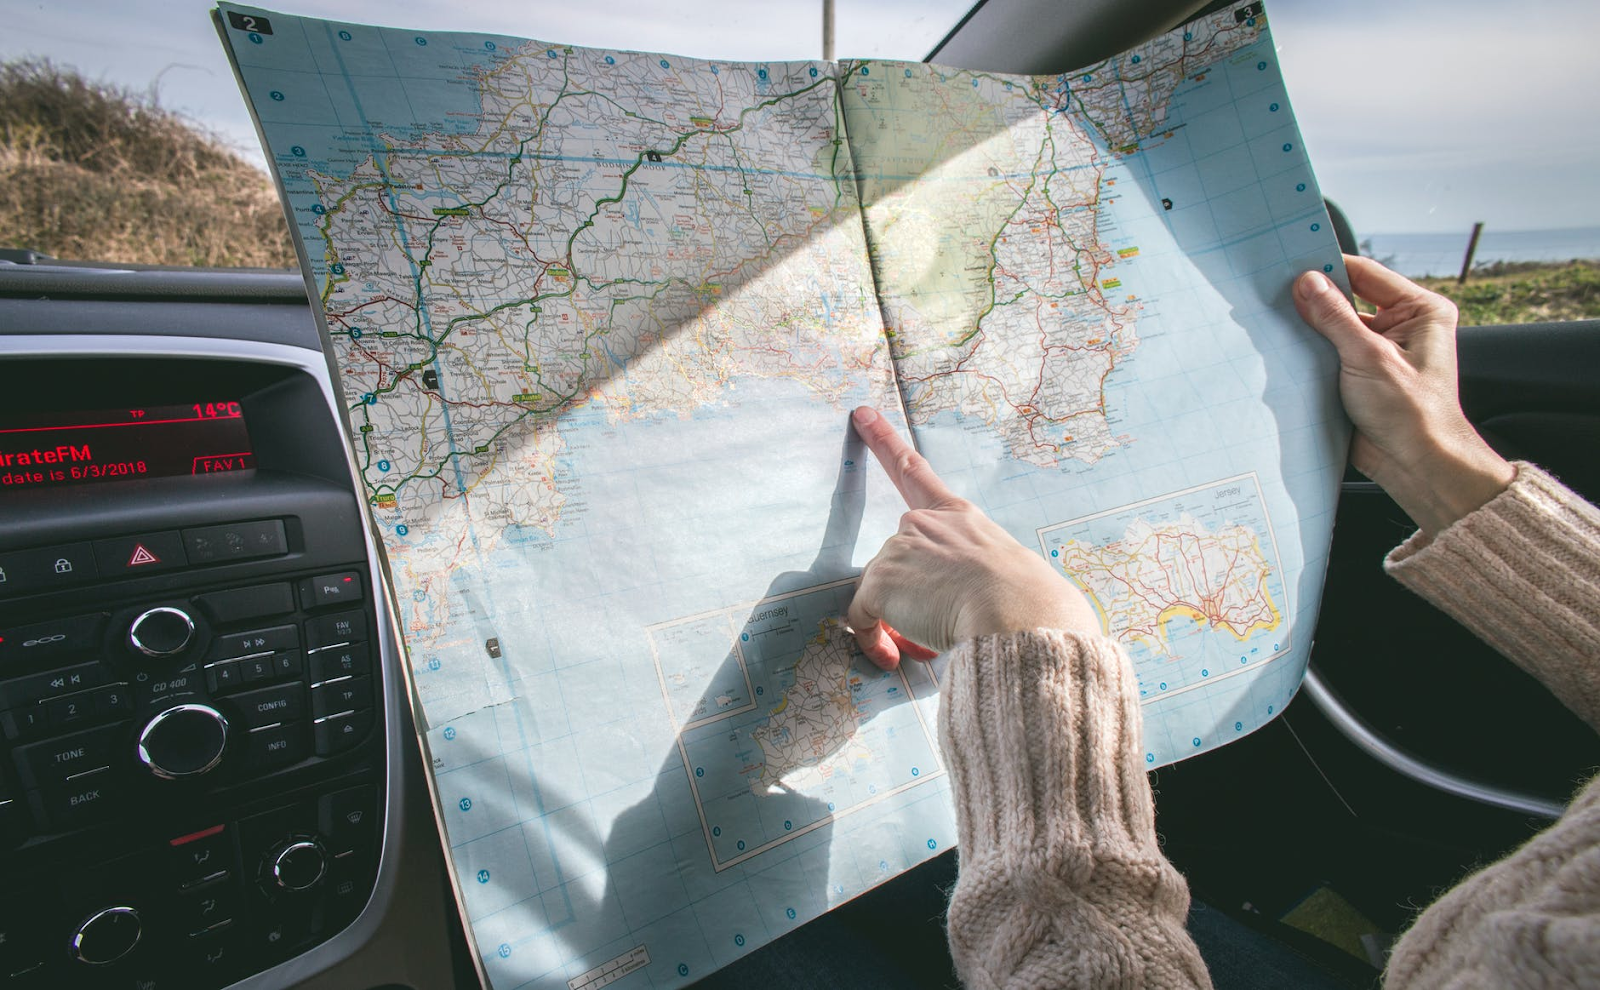 Using the old fashioned technique of finding where you need to go--a paper map.e